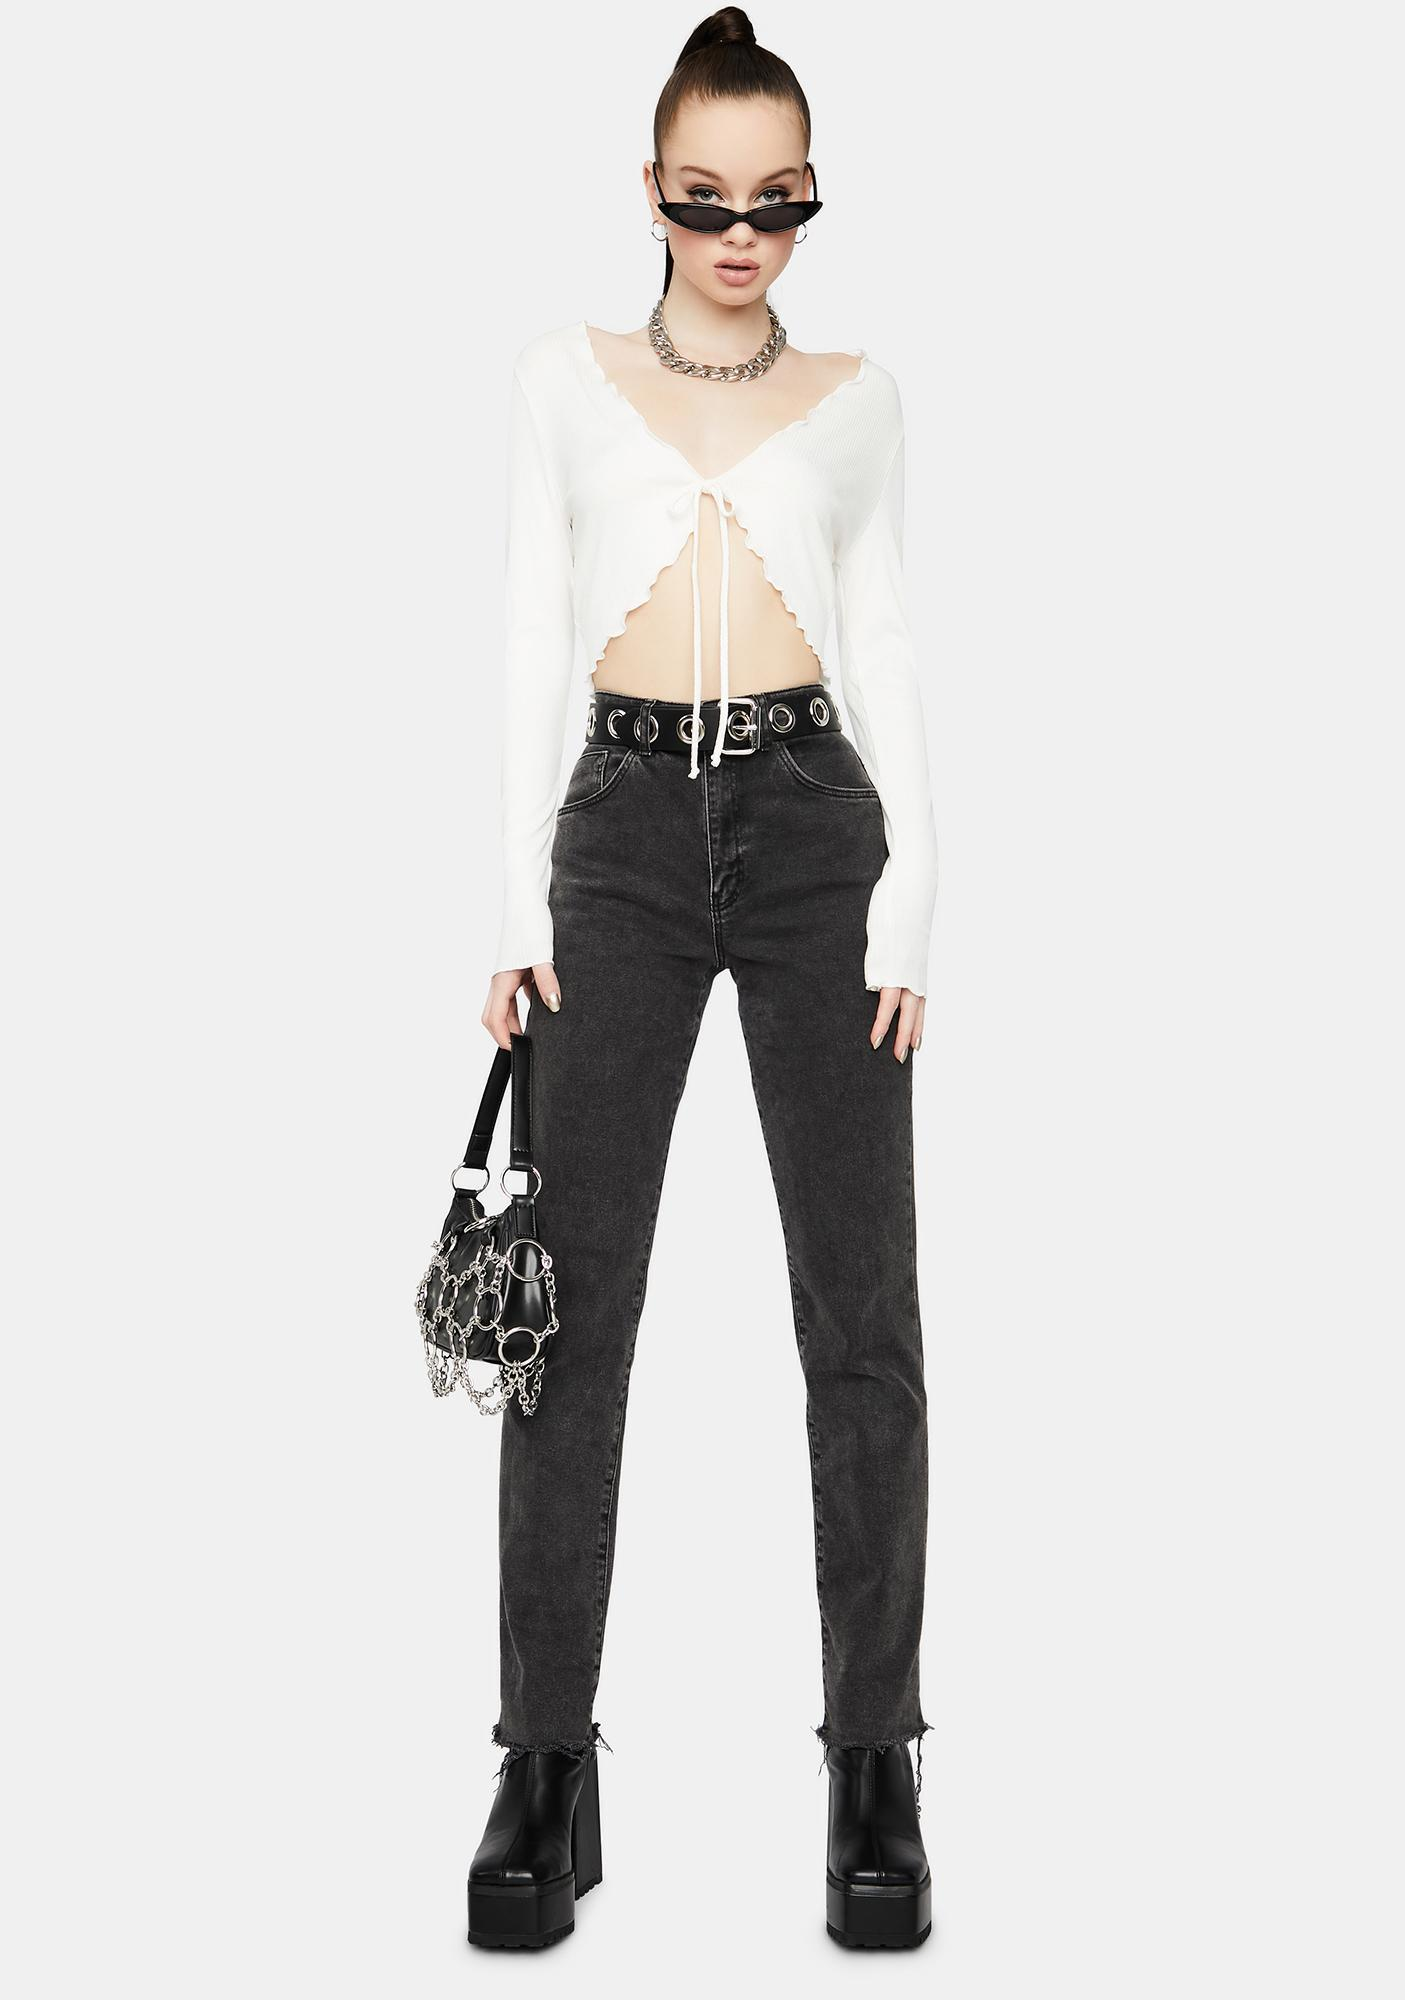 Chill On And Poppin' Tie Front Crop Top